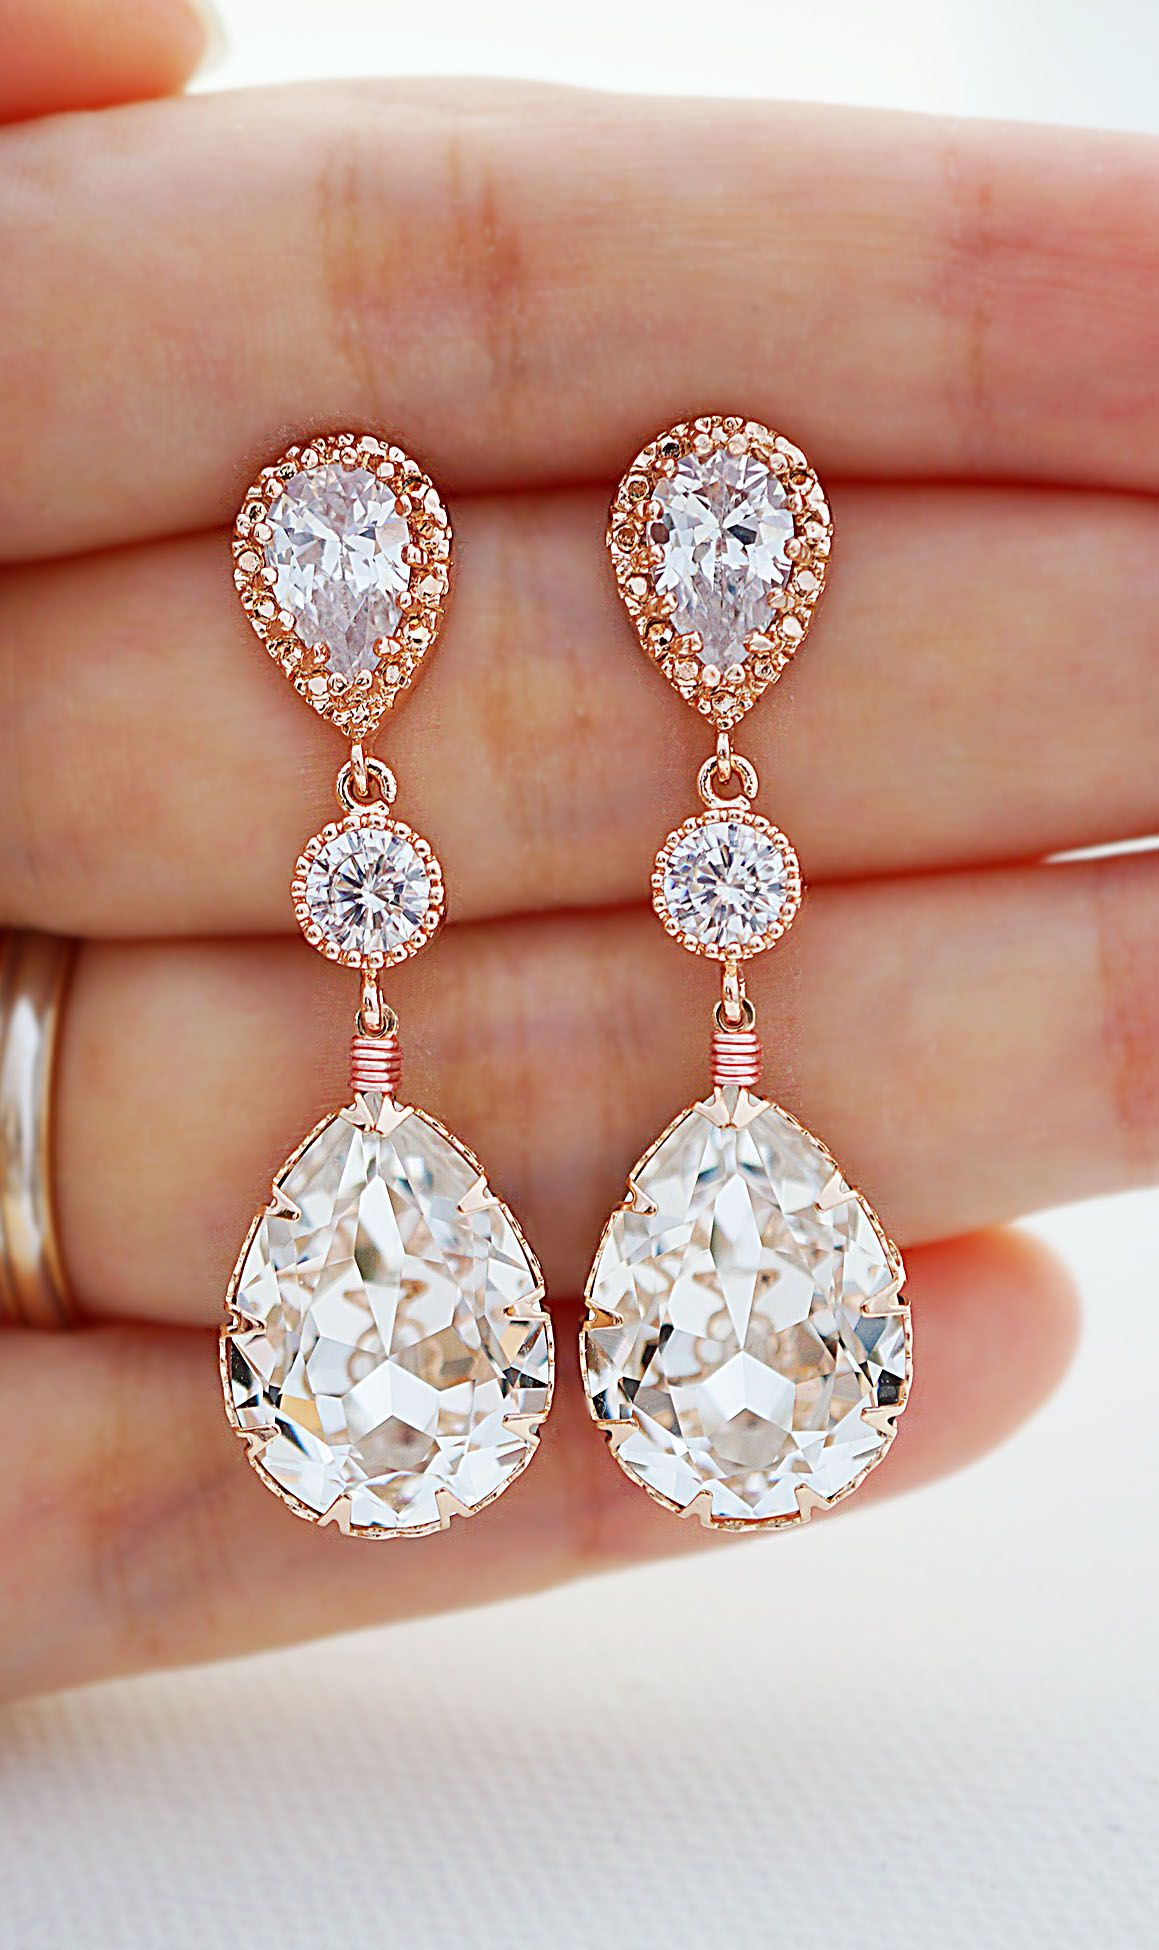 87737ae08 Swarovski Crystal Rose Gold Bridal Earrings from EarringsNation Wedding  Earrings Rose Gold Weddings Blush weddings Bridal